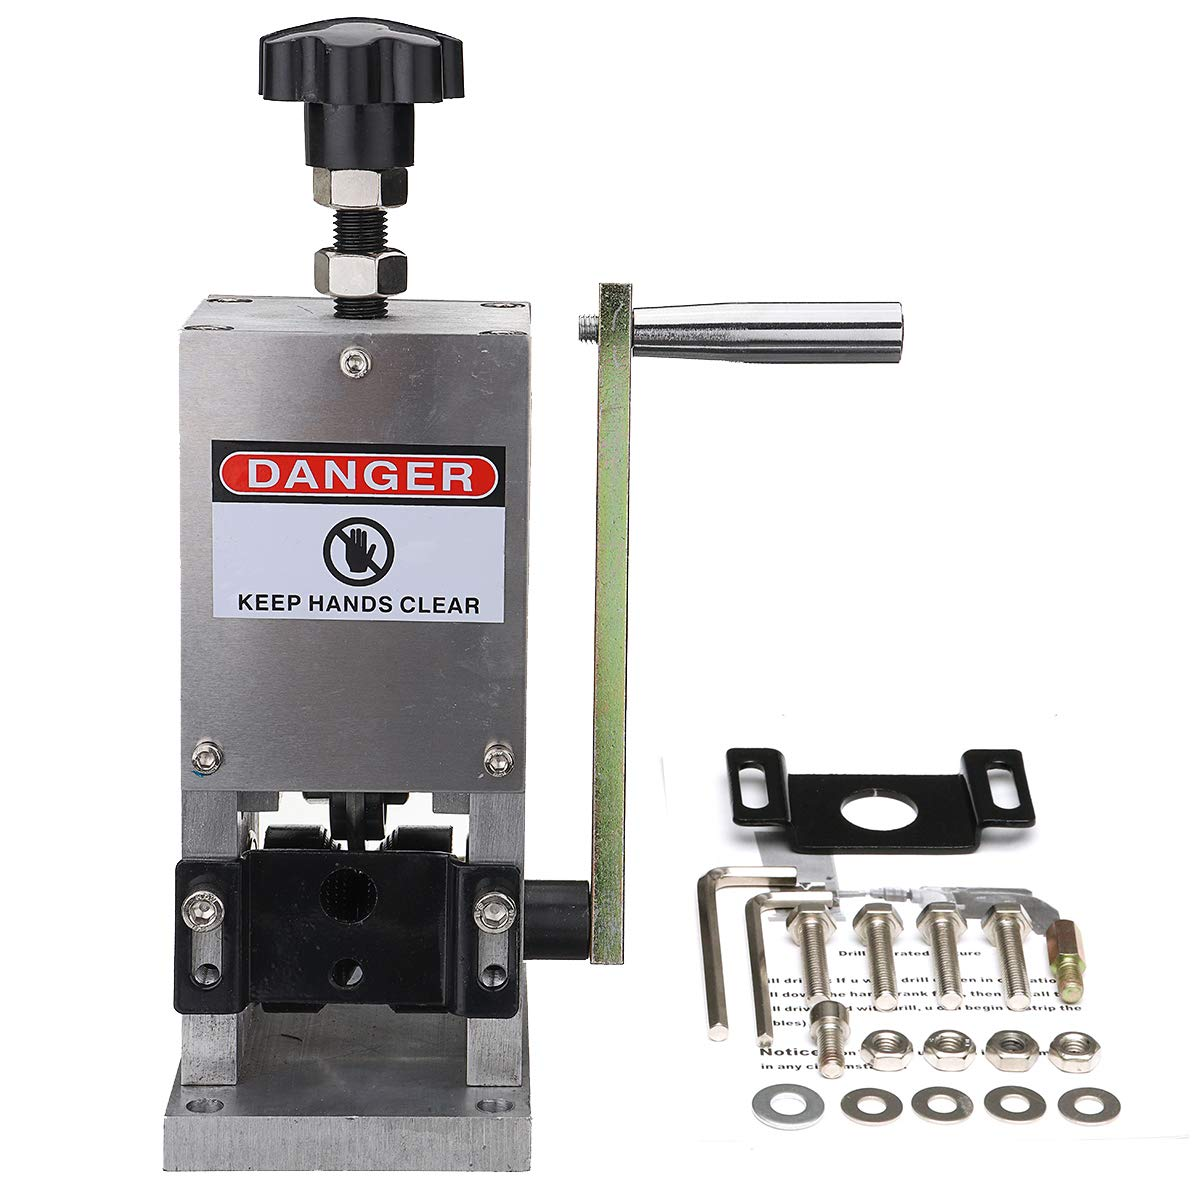 Manual Labeling Machine Wire Harness on capacitor labeling, power supply labeling, safety harness labeling, cable labeling, control panel labeling, hose labeling,